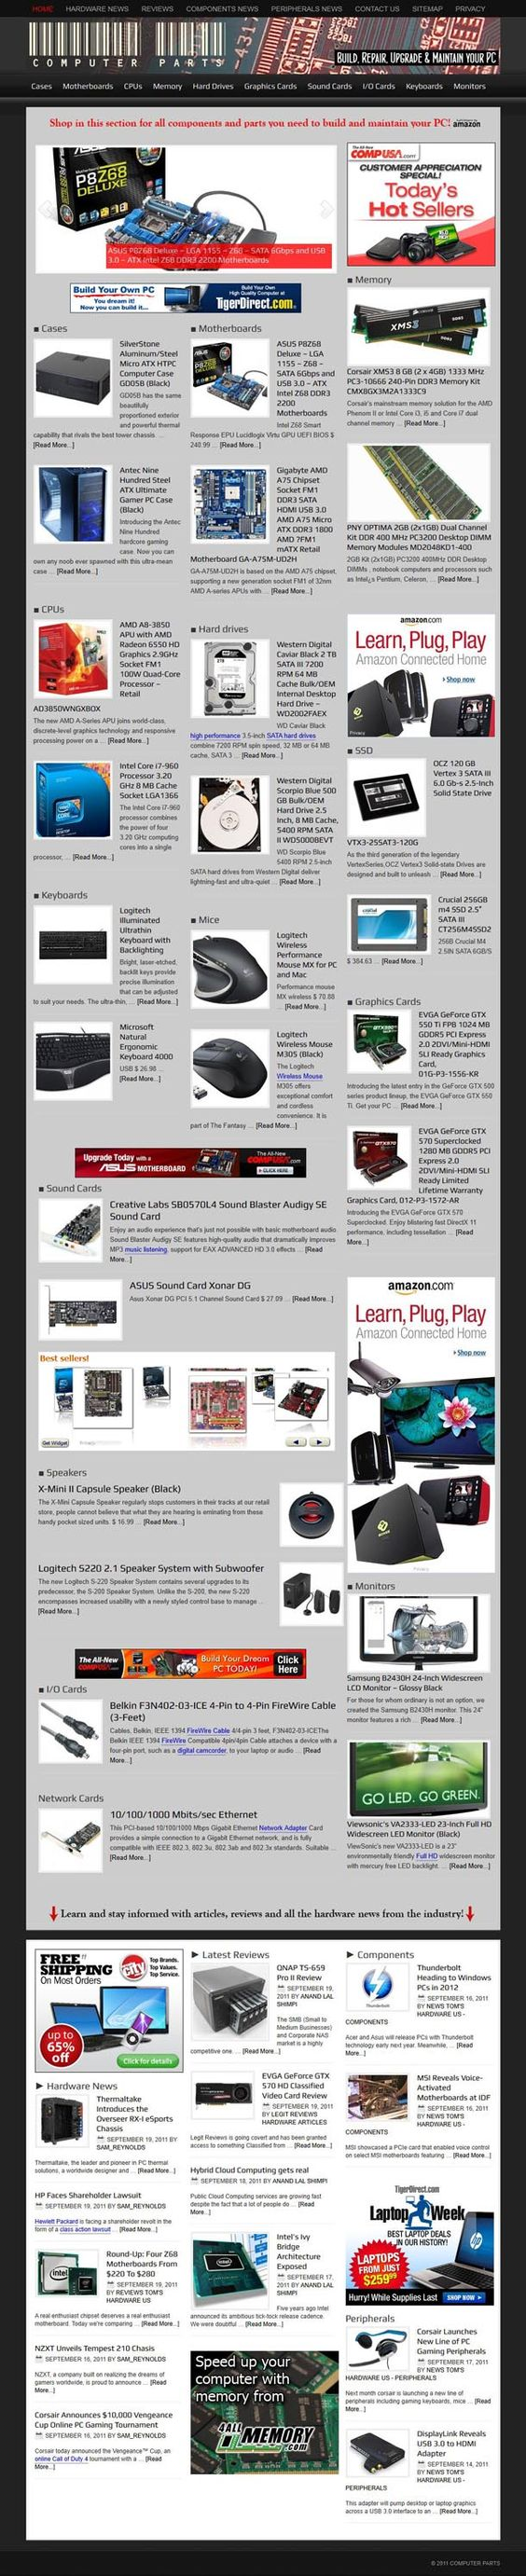 Sell PC parts & computer components  READY MADE WEBSITE FOR SALE!    Completely automated turnkey website about PC parts and components. Perfect for beginners, entirely on autopilot. DOUBLE AUTOMATION with WPRobot and News Aggregator. Every day a different homepage showing the latest products and news from the hardware industry. Extremely high CPC in the top technological niche there is.